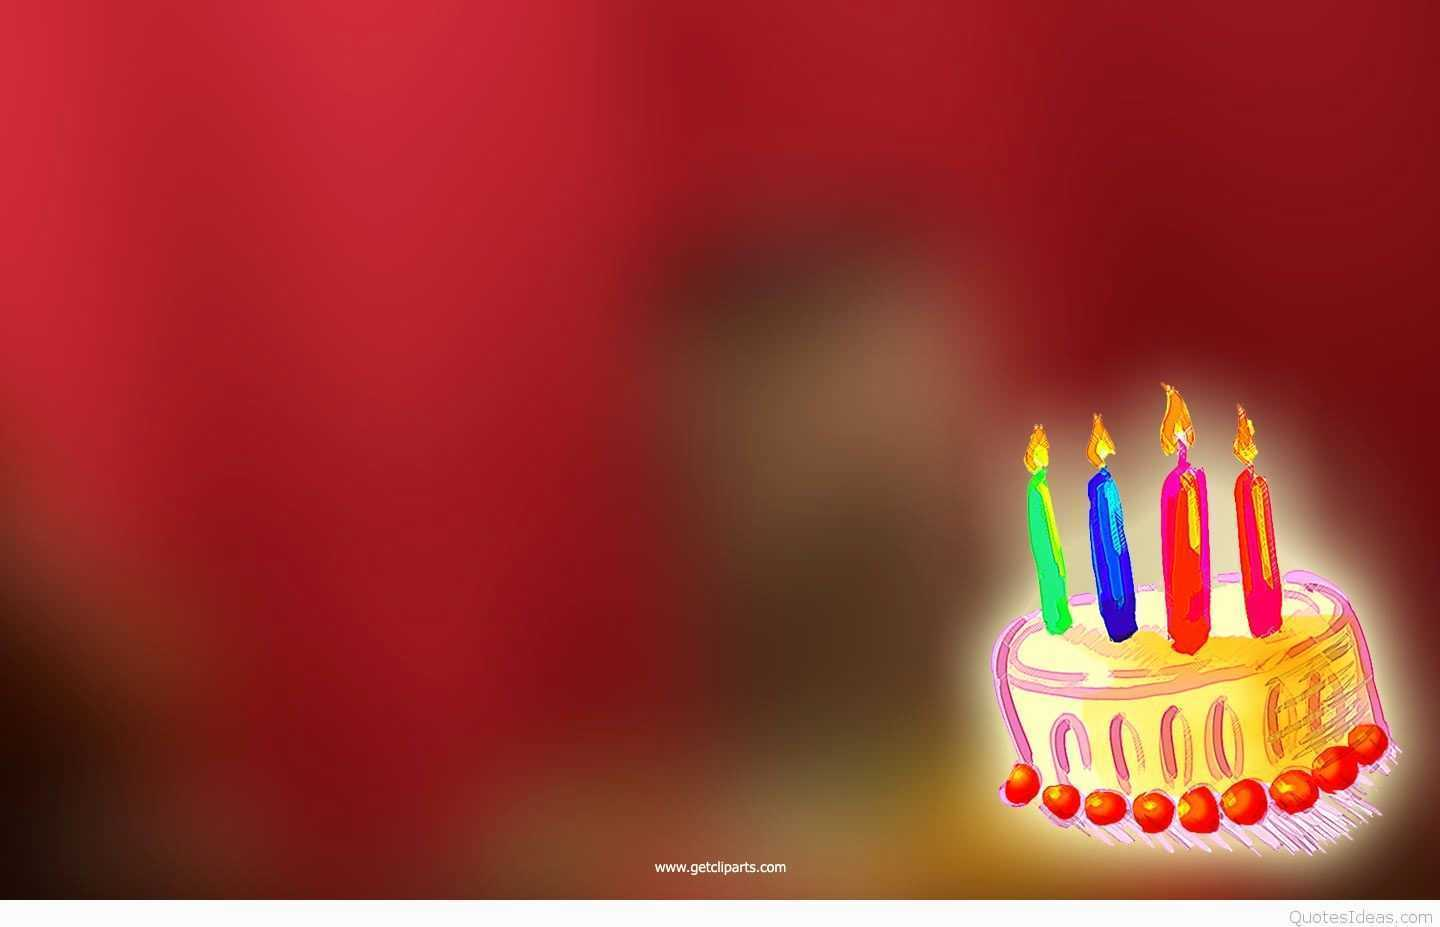 happy birthday background hd images ; hd-images-happy-birthday-lovely-happy-birthday-background-hd-of-hd-images-happy-birthday